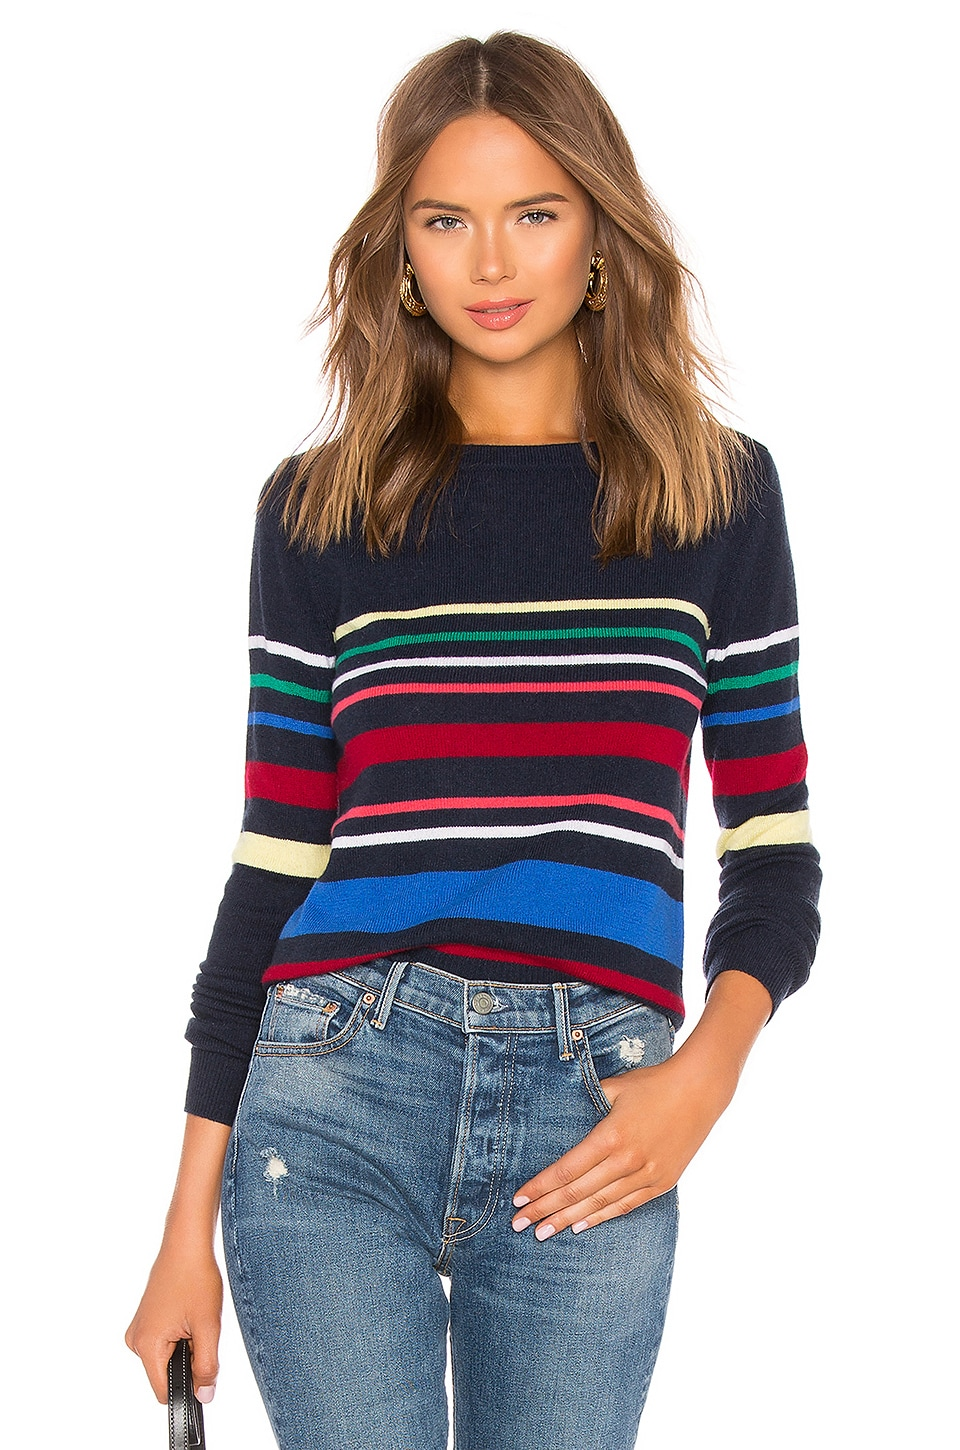 Autumn Cashmere Multi Stripe Boatneck Sweater in Navy Bright